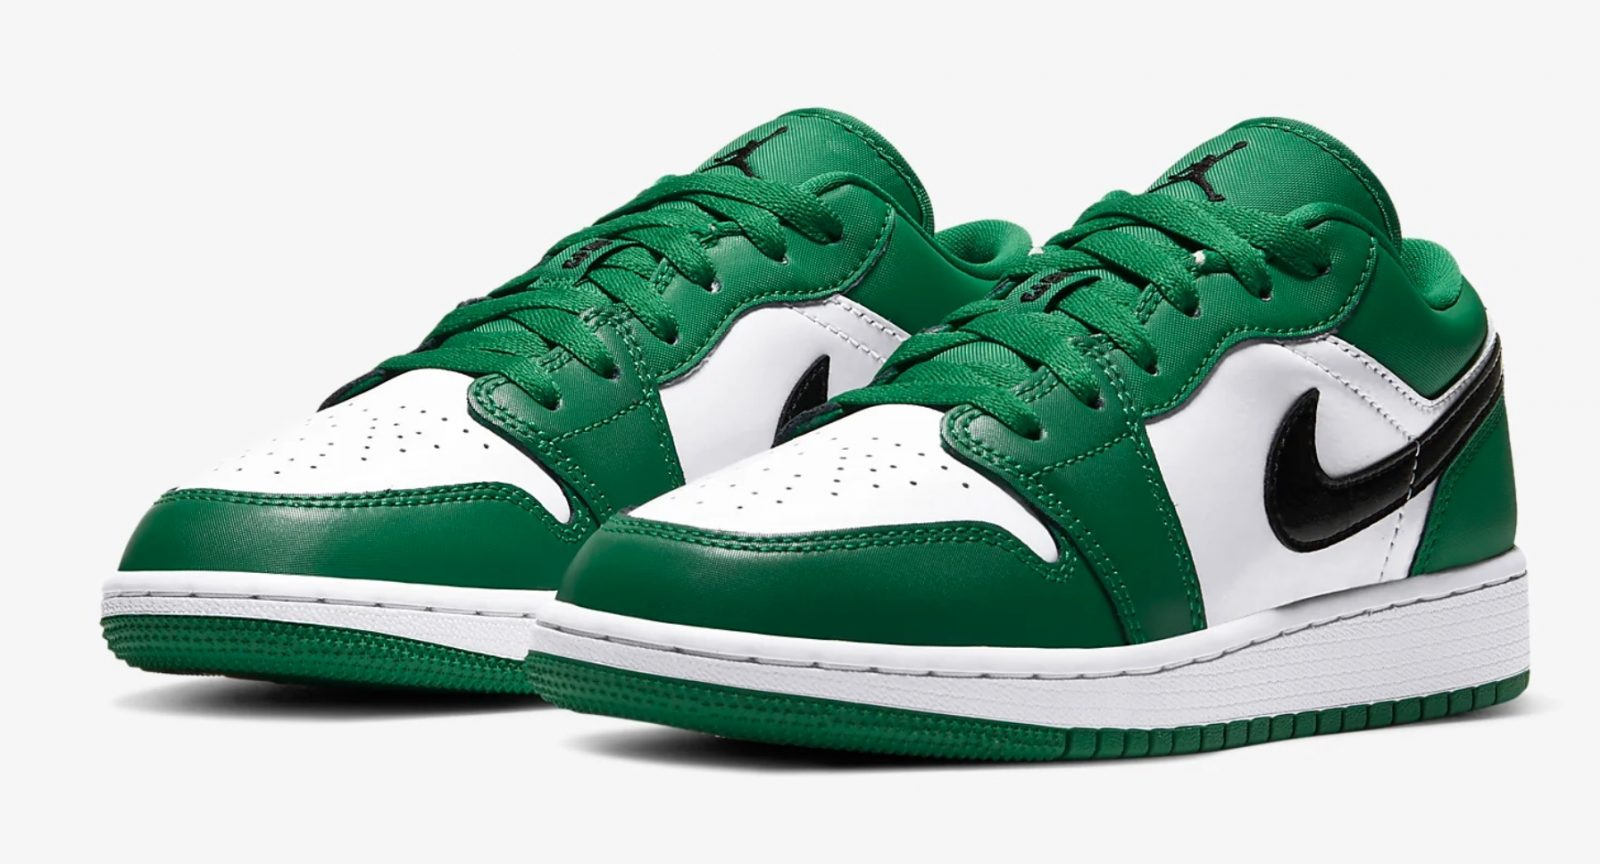 Air Jordan 1 Low Pine Green 553560-301